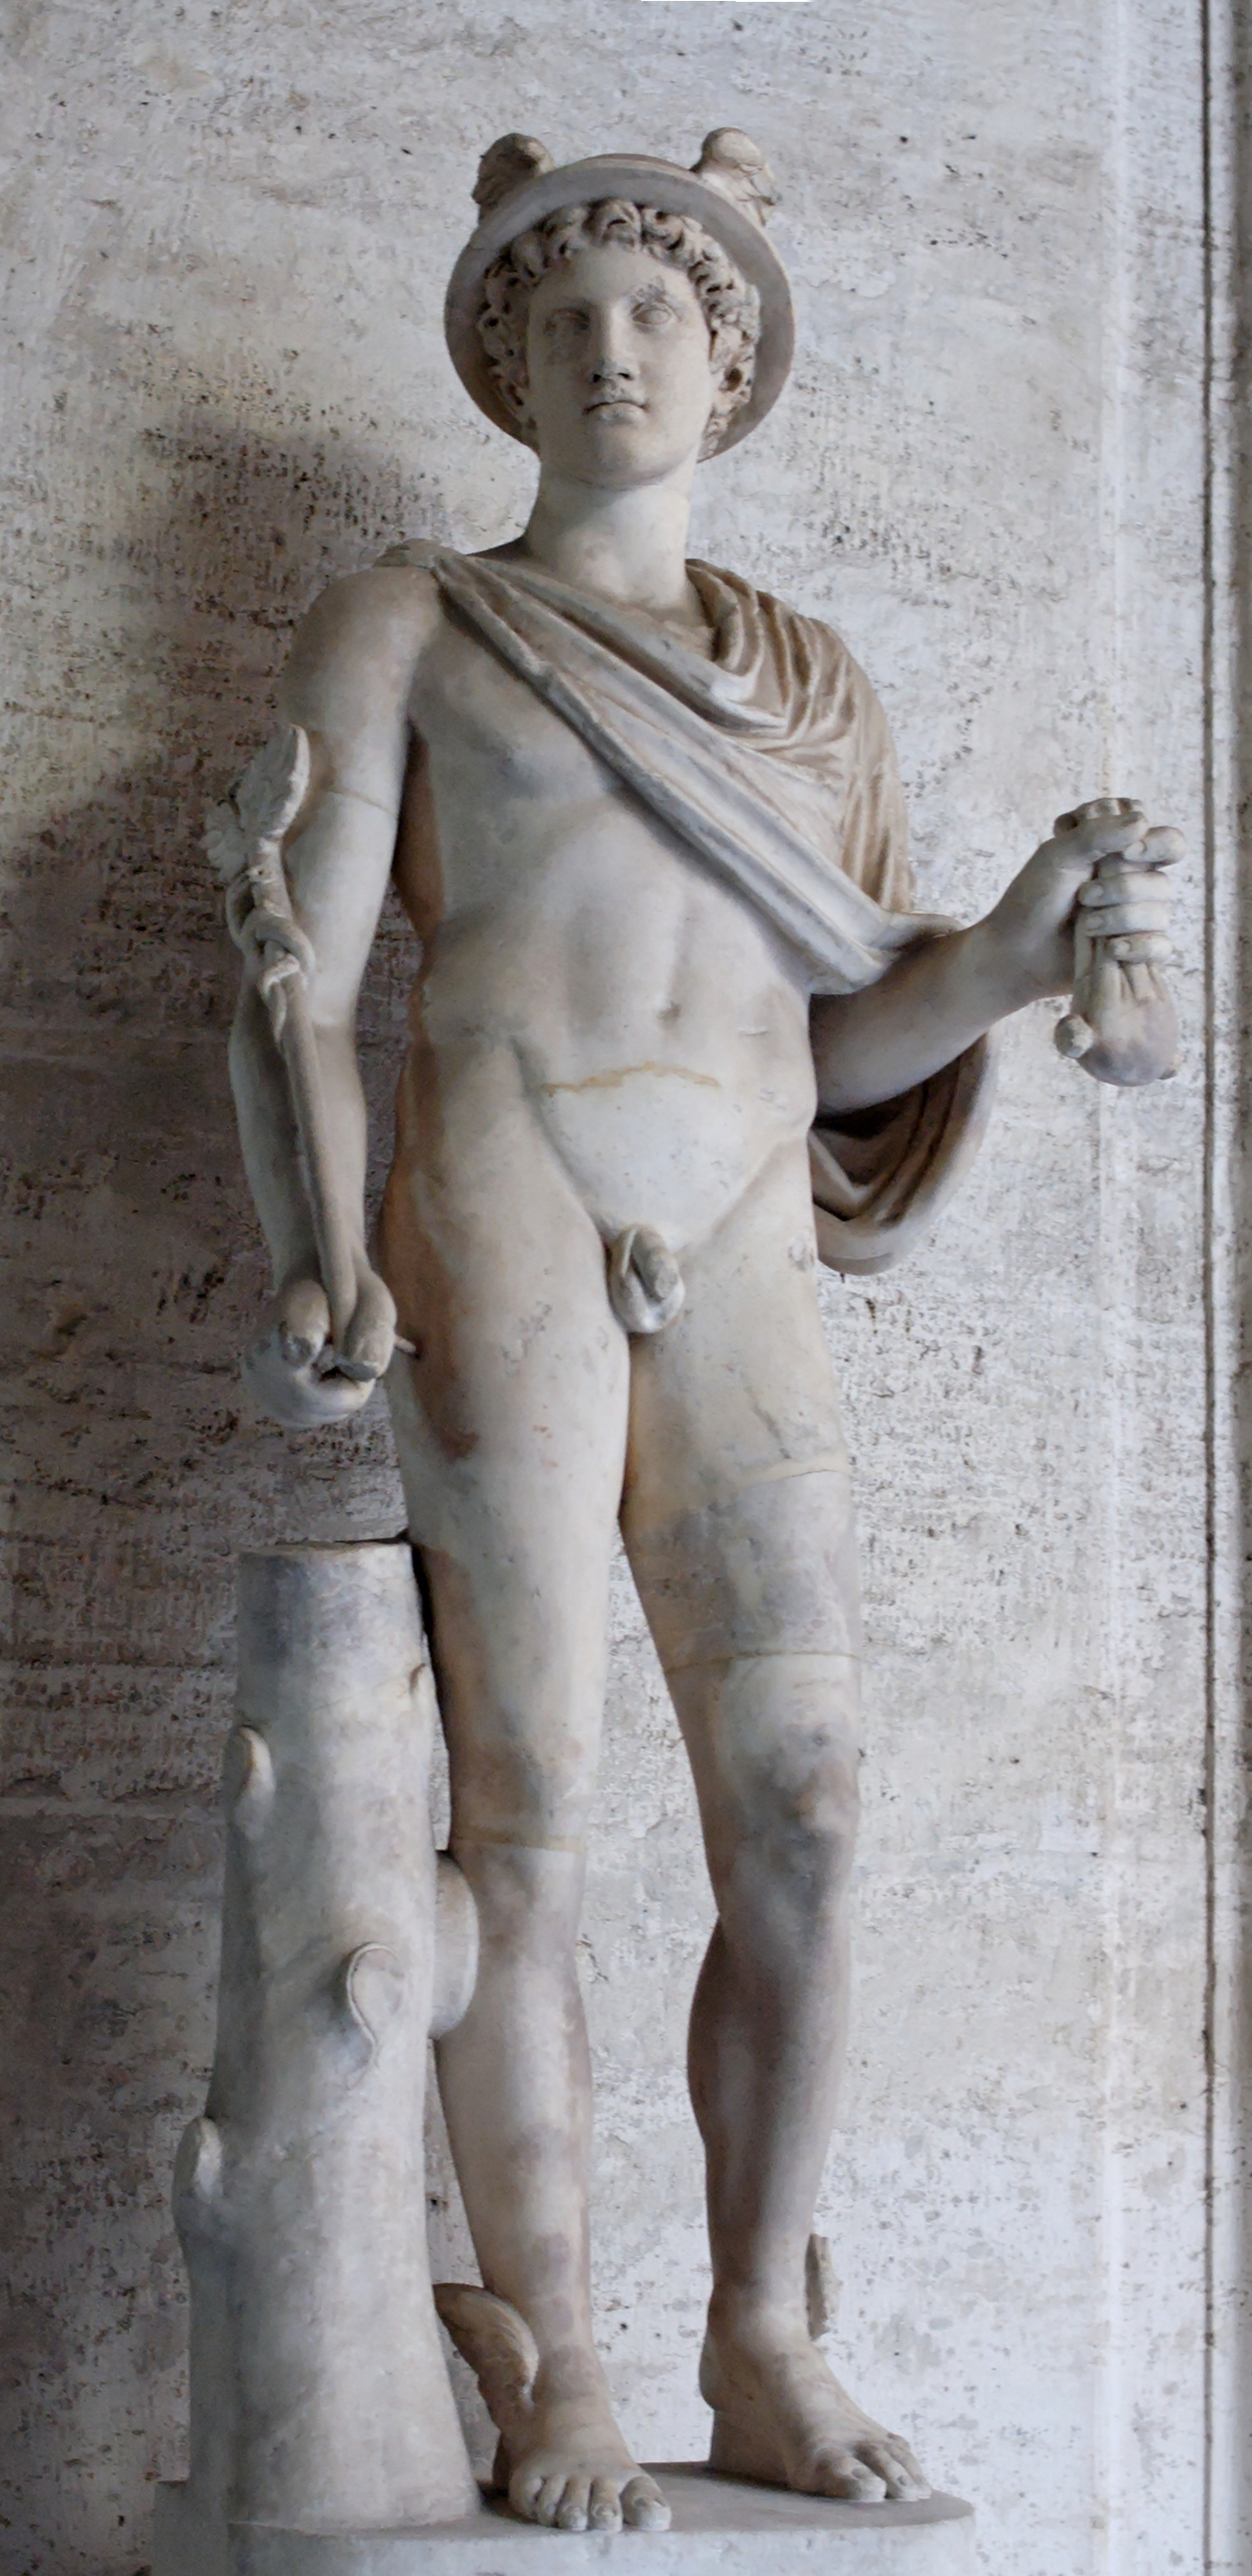 Statue of Hermes. Marble, Roman copy after a Greek original of the early 4th century BC.